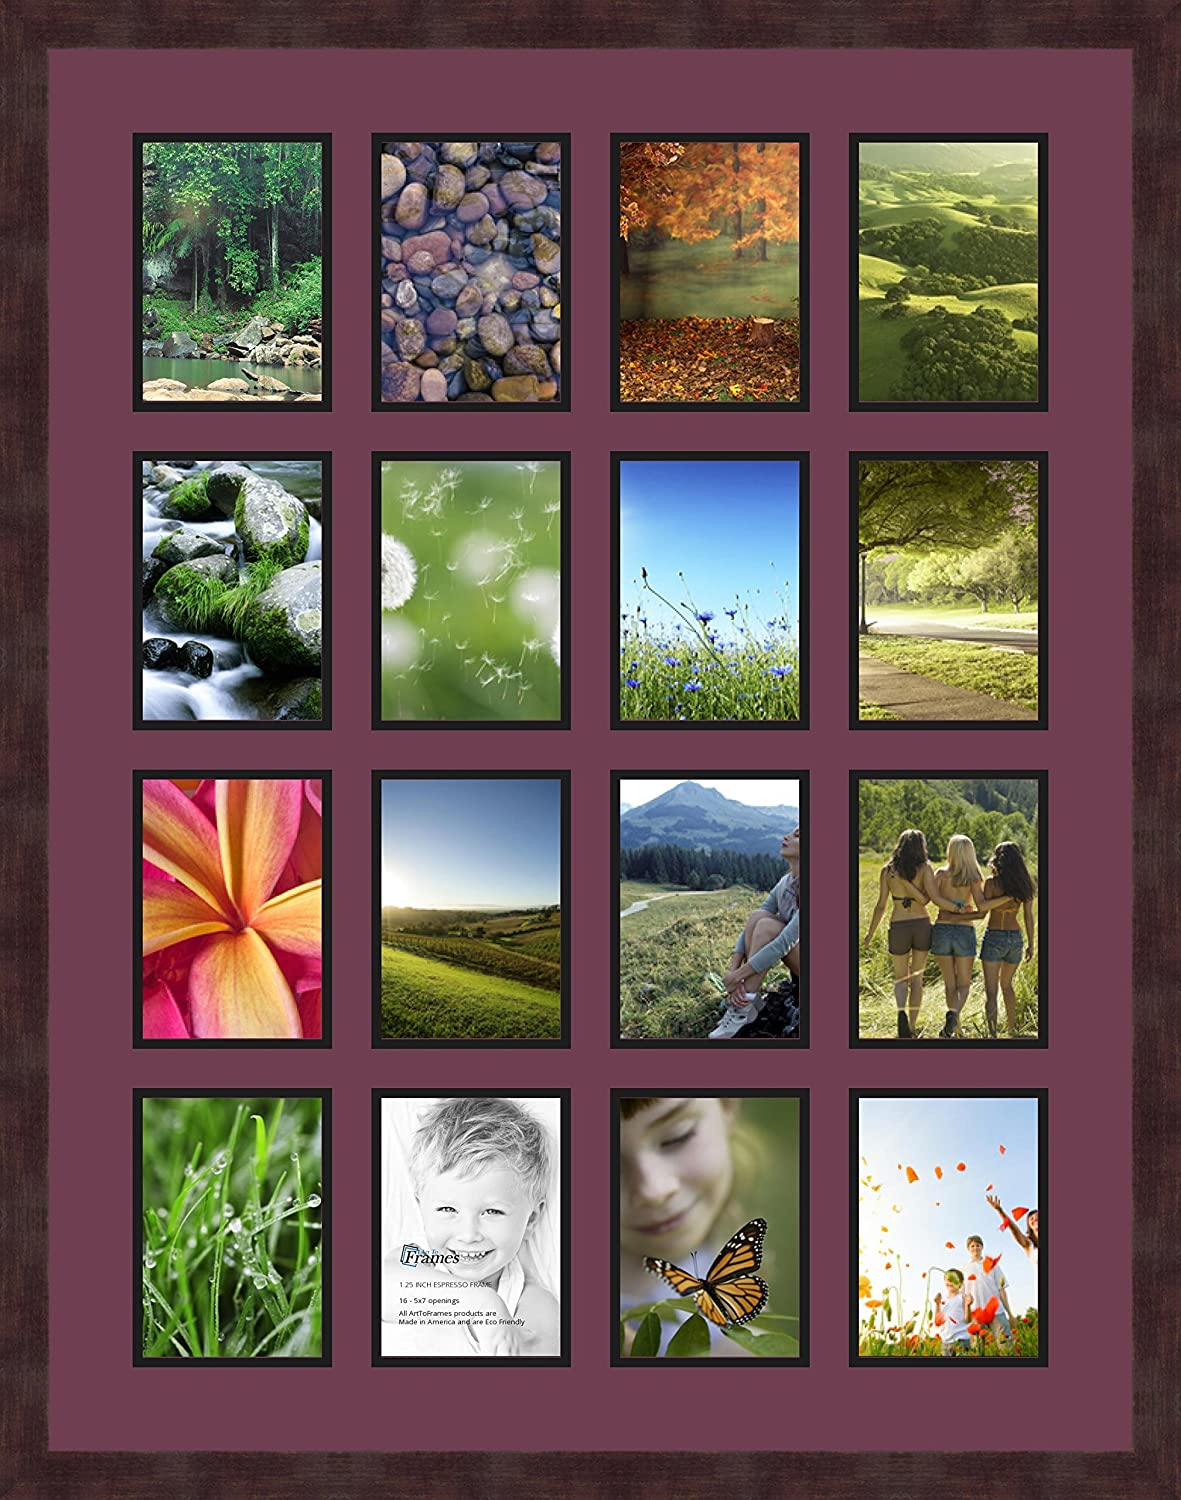 Art to Frames Double-Multimat-802-815//89-FRBW26061 Collage Frame Photo Mat Double Mat with 13-5x7 Openings and Espresso Frame